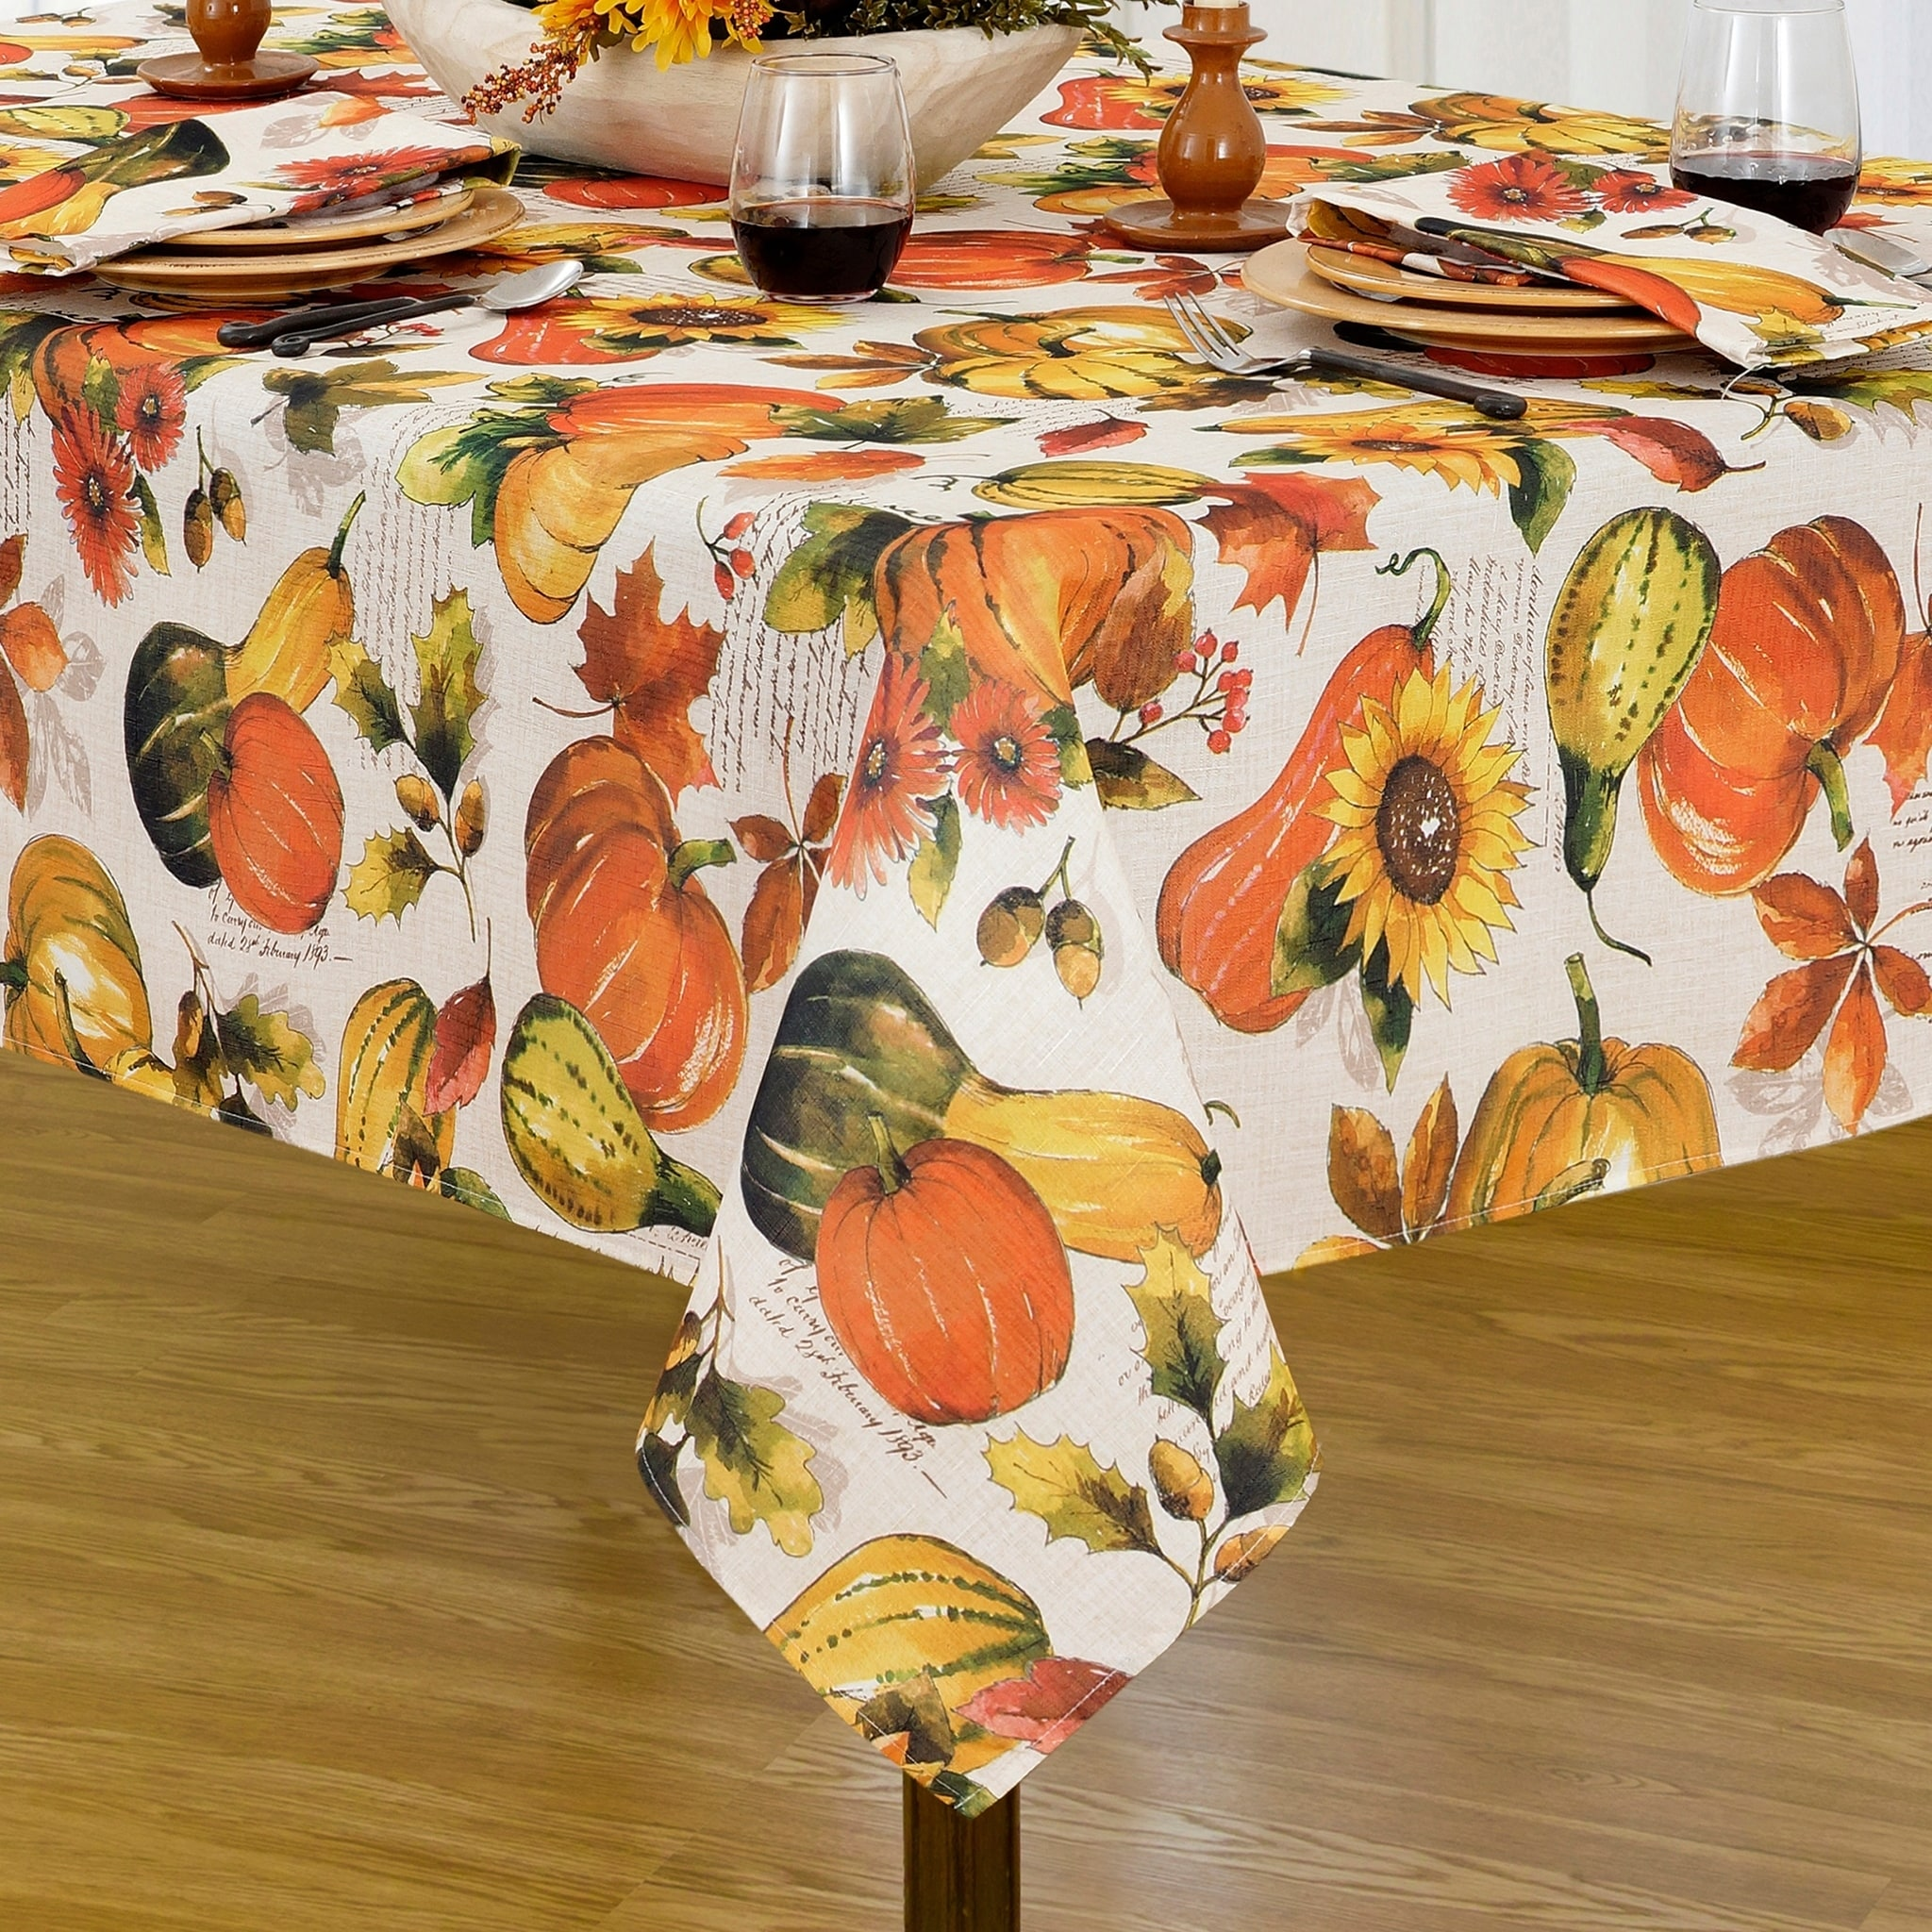 Grateful Season Printed Fabric Harvest Tablecloth Overstock 18008739